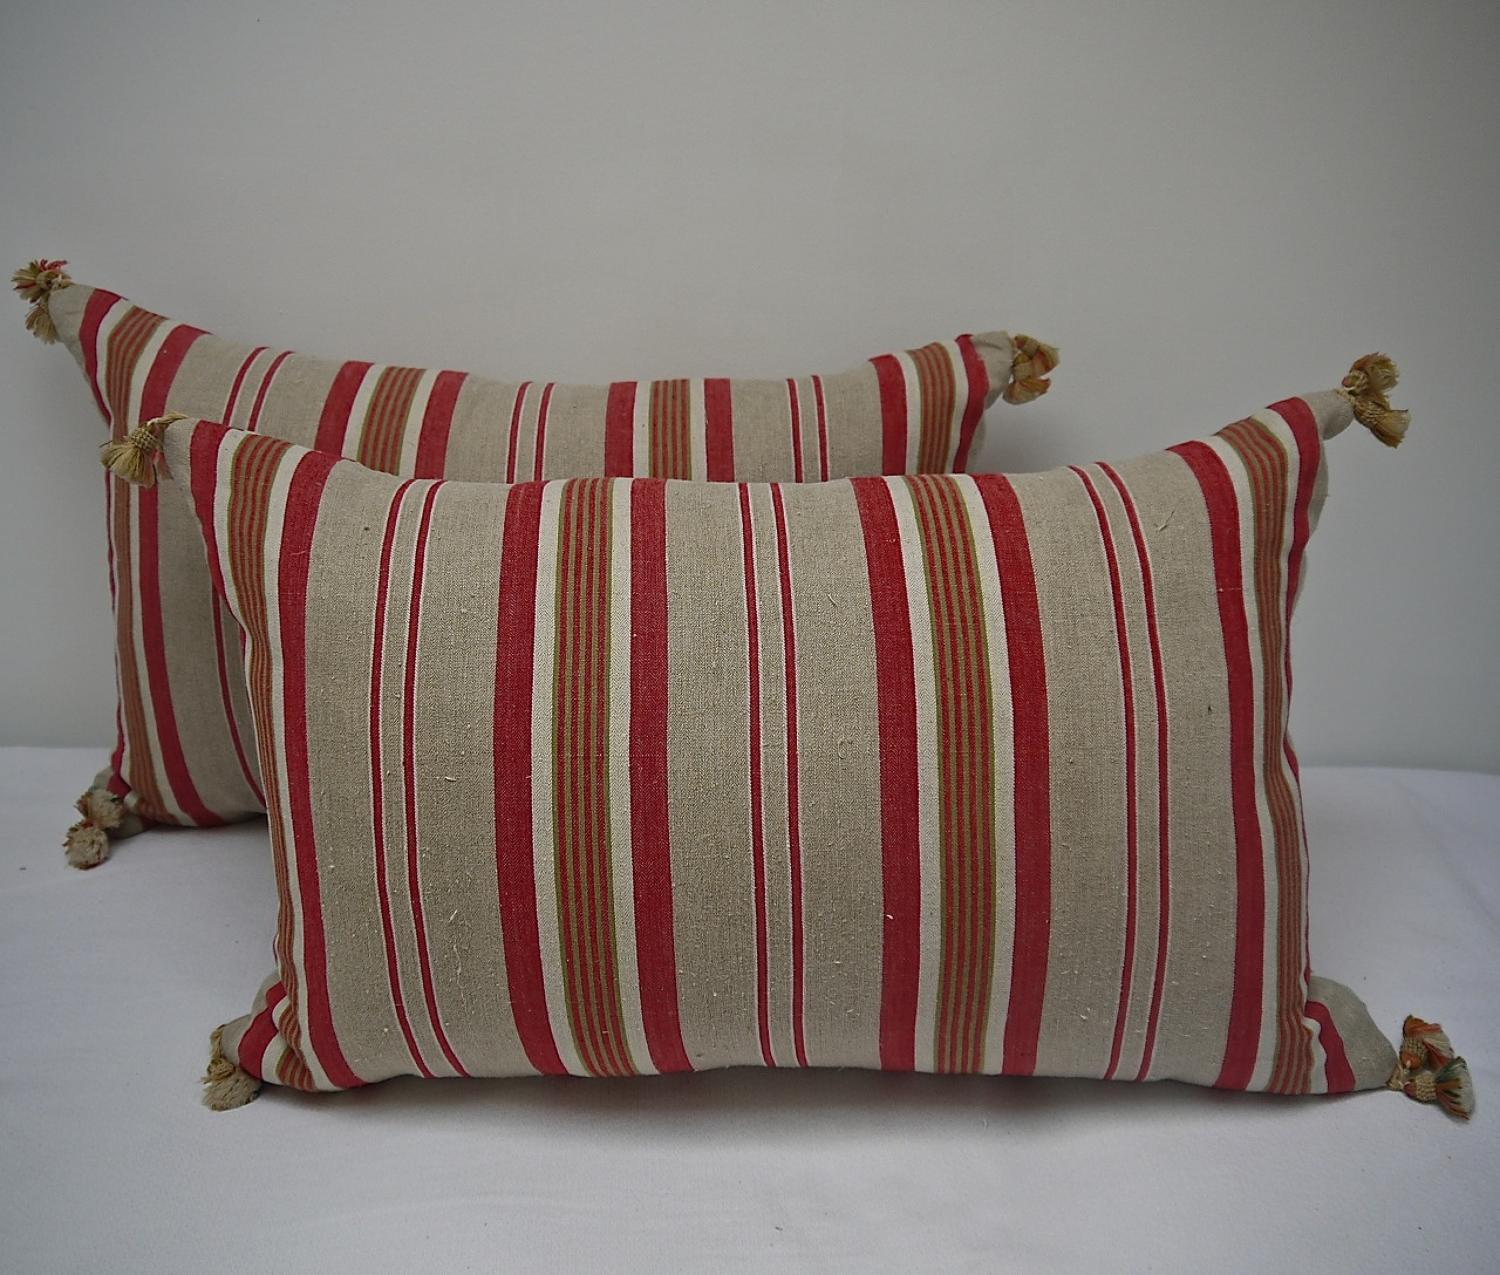 Pair of early 20th century French striped linen ticking cushions